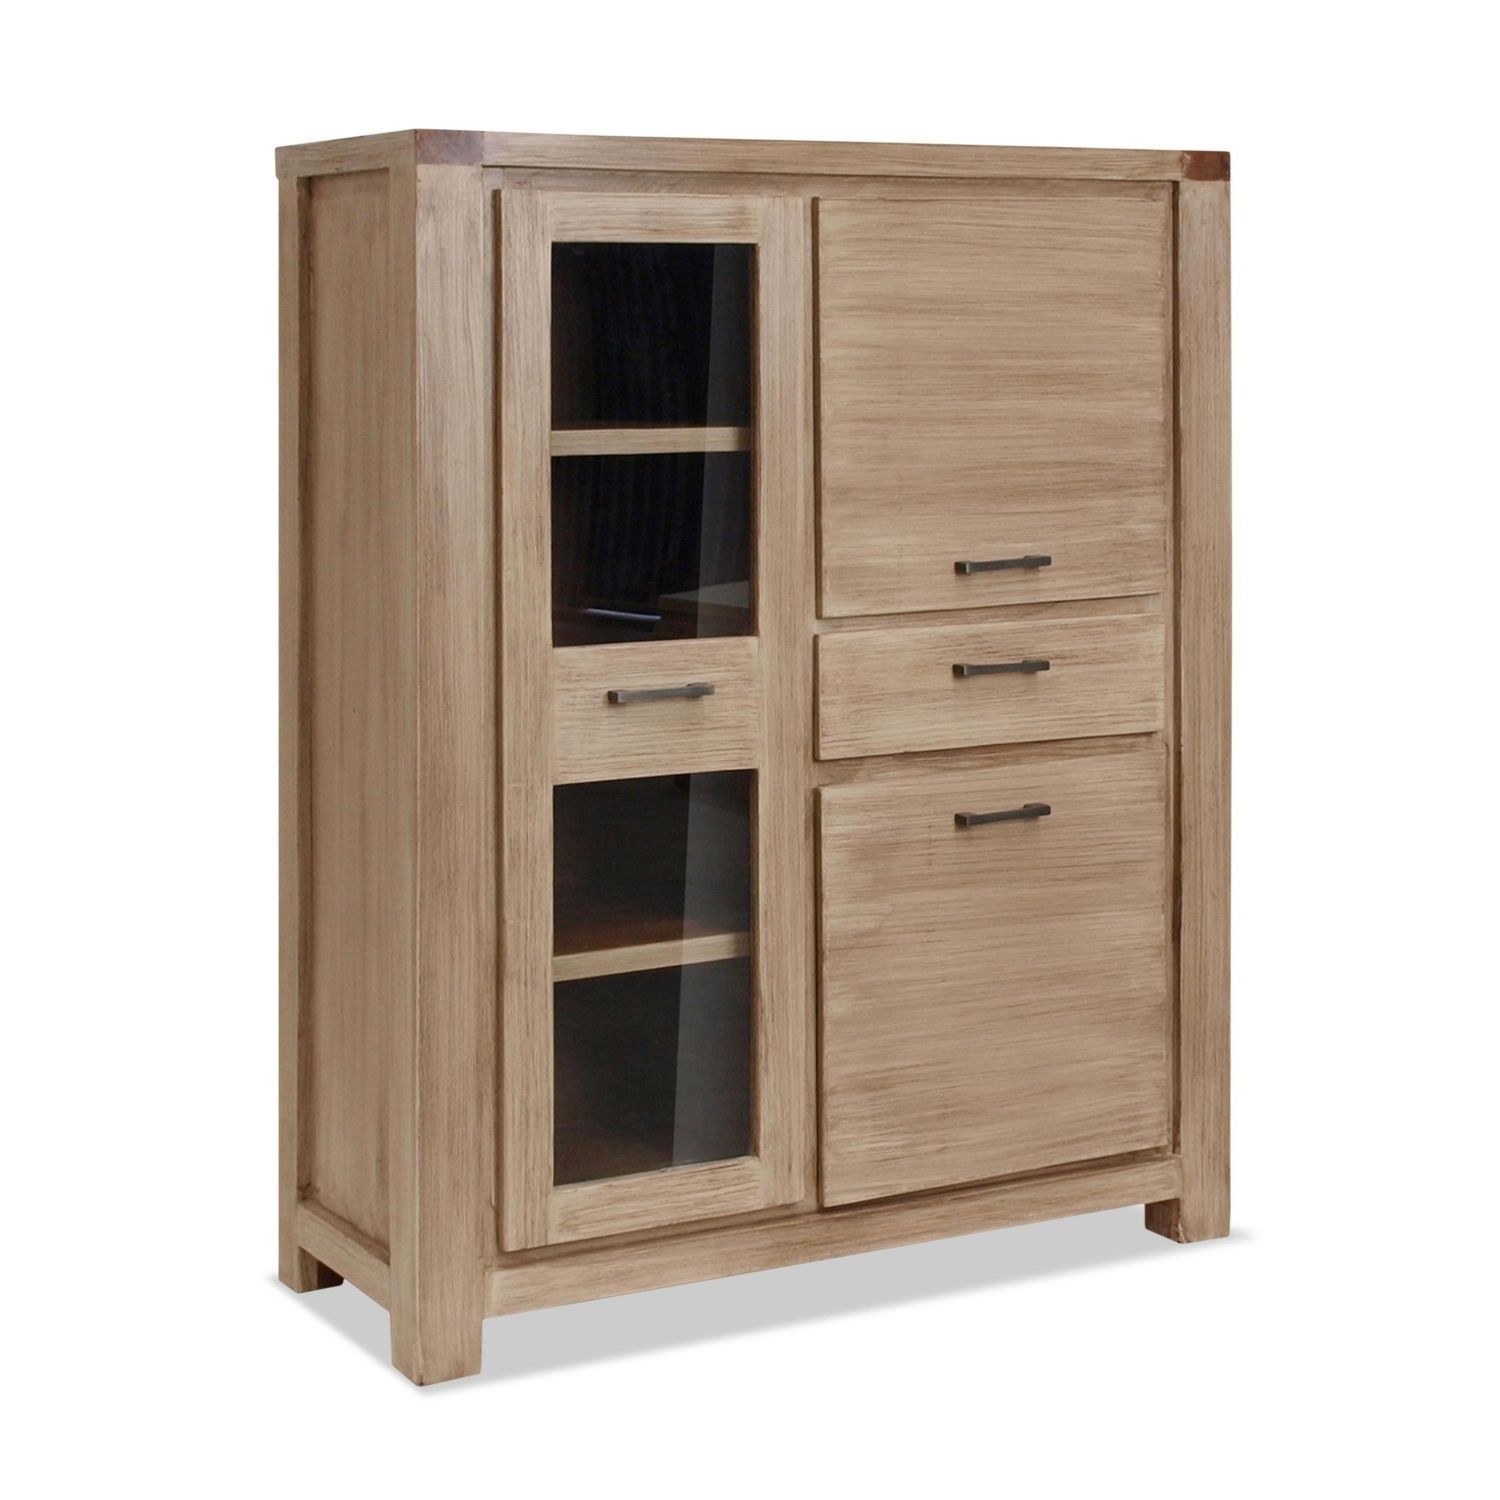 Mueble bar econ mico dise o exclusivo for Mueble economico